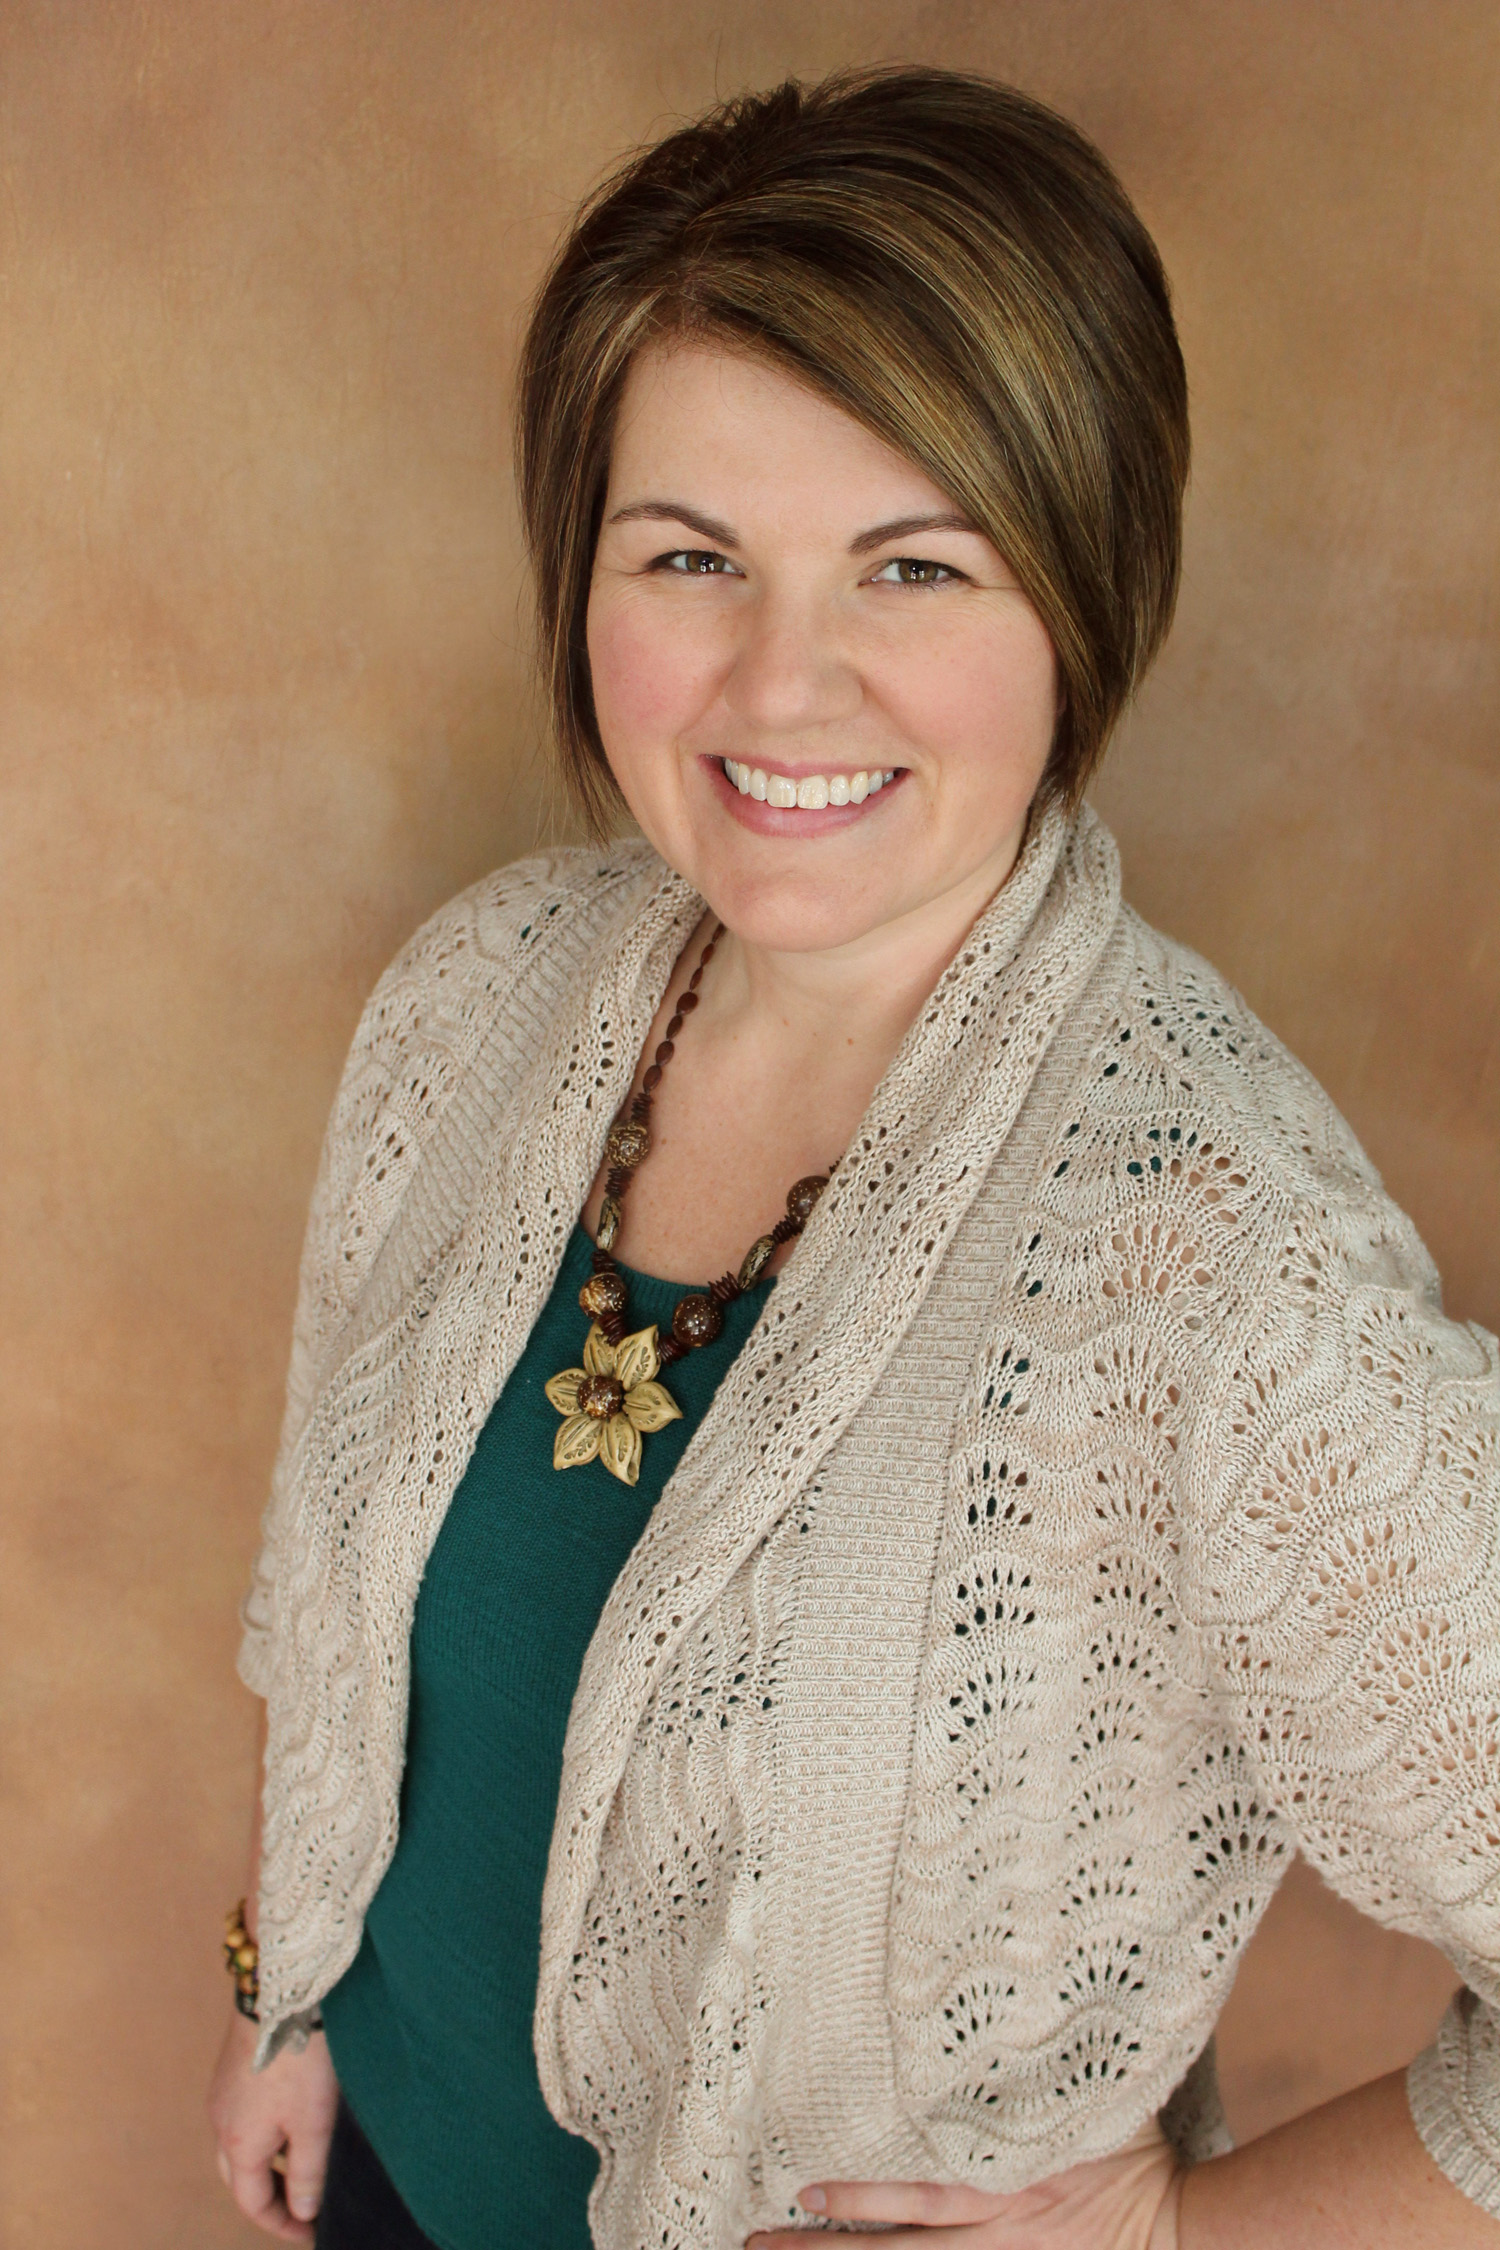 Hi, I'm Tanya - I had a realization when I was a parent of two small daughters that I needed to find ways to relax, regroup and renew myself so that I could be my truest self and teach my girls the same.I have traveled through the world of massage therapy, having been a massage therapist for over 15 years. I reached out and used my skills within hospice programs and built my own business. And I wanted to do more.I was yearning for more connection, I wanted to be with other women to say we are enough, we are not too much, we know in our hearts what is true. I started leading day long workshops, retreat days, and women's circles all leading up to expanding into weekend retreats. Because I knew there could be more impact with a bit more time to reflect.I was able to experience the healing and transformative power of taking time to self reflect, and pause.That is what I want to help you do. Pause and Connect.